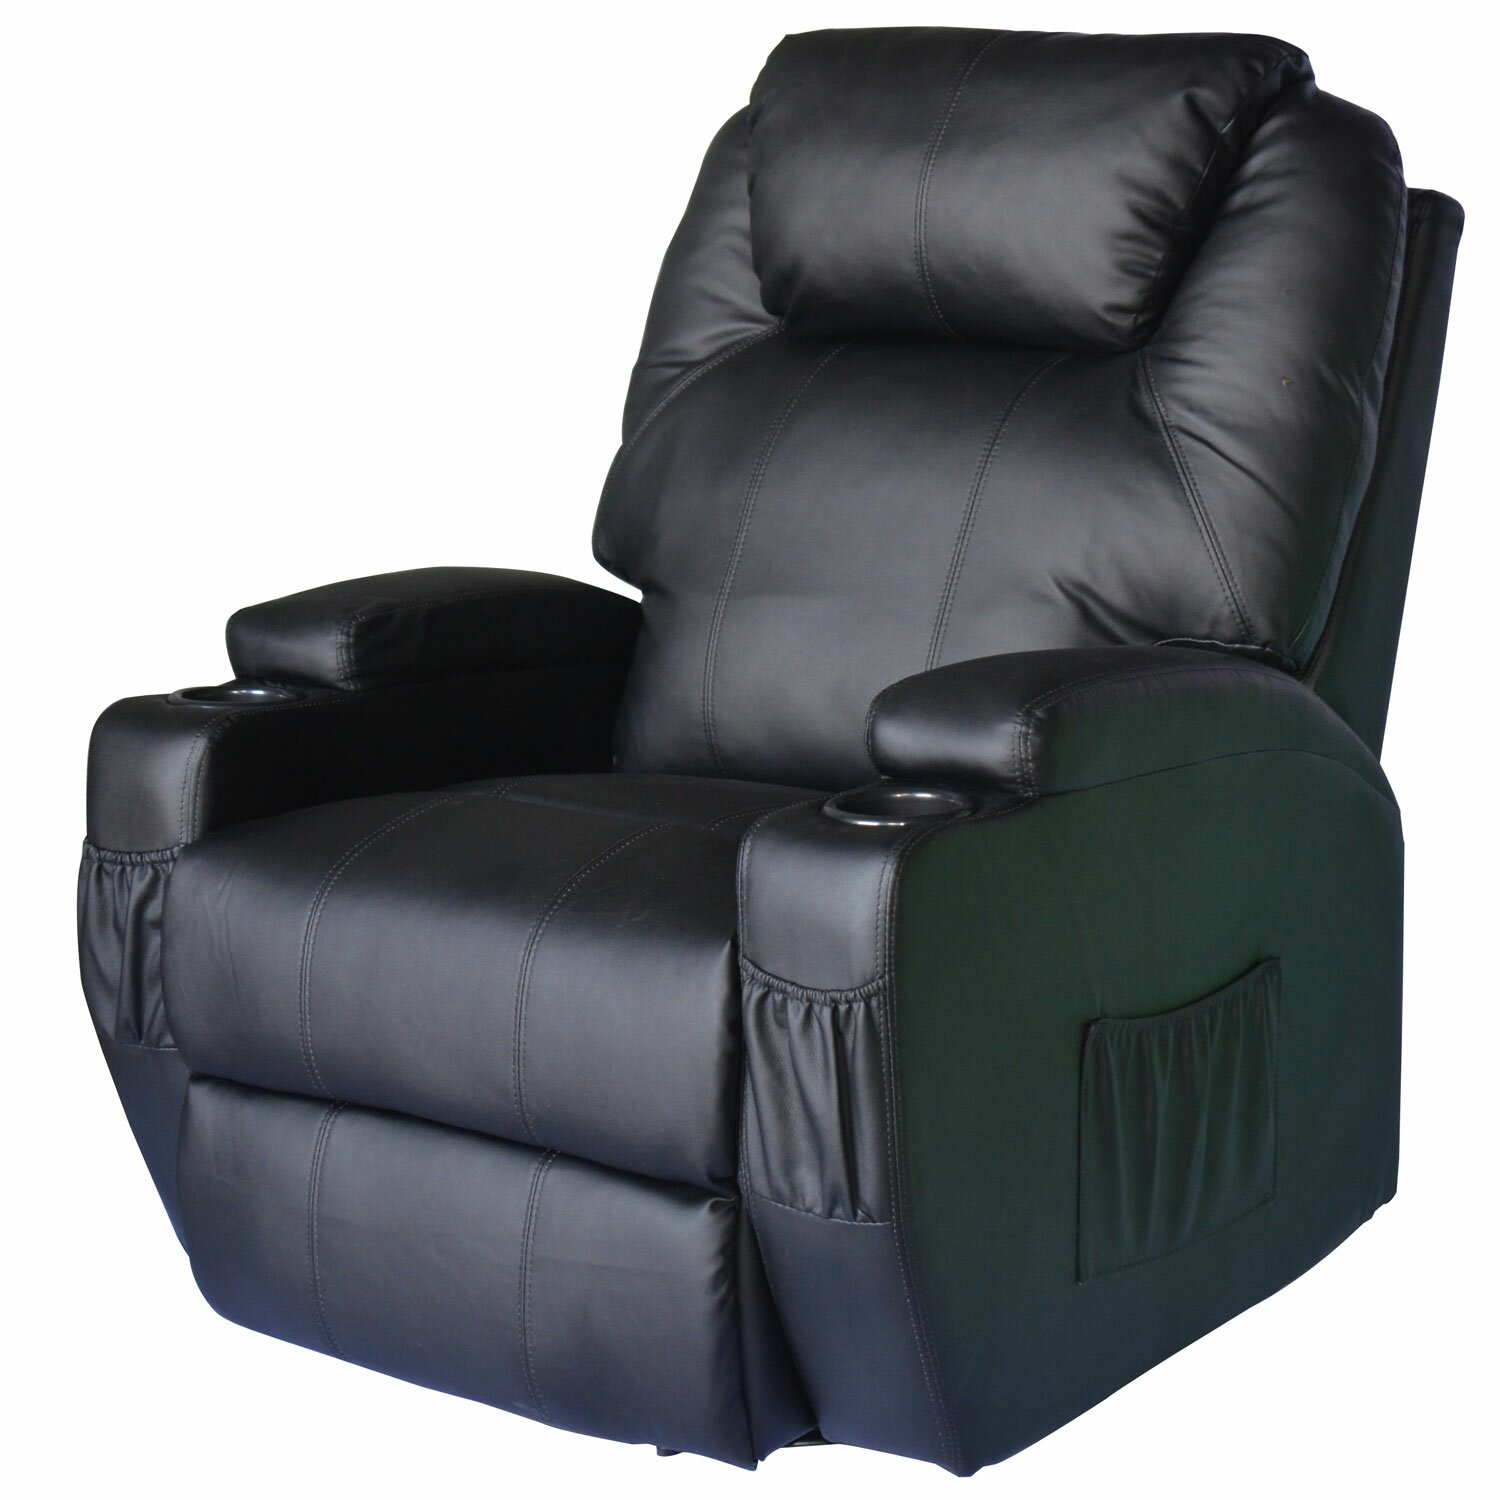 outsunny homcom deluxe heated vibrating vinyl leather massage recliner reviews wayfair. Black Bedroom Furniture Sets. Home Design Ideas